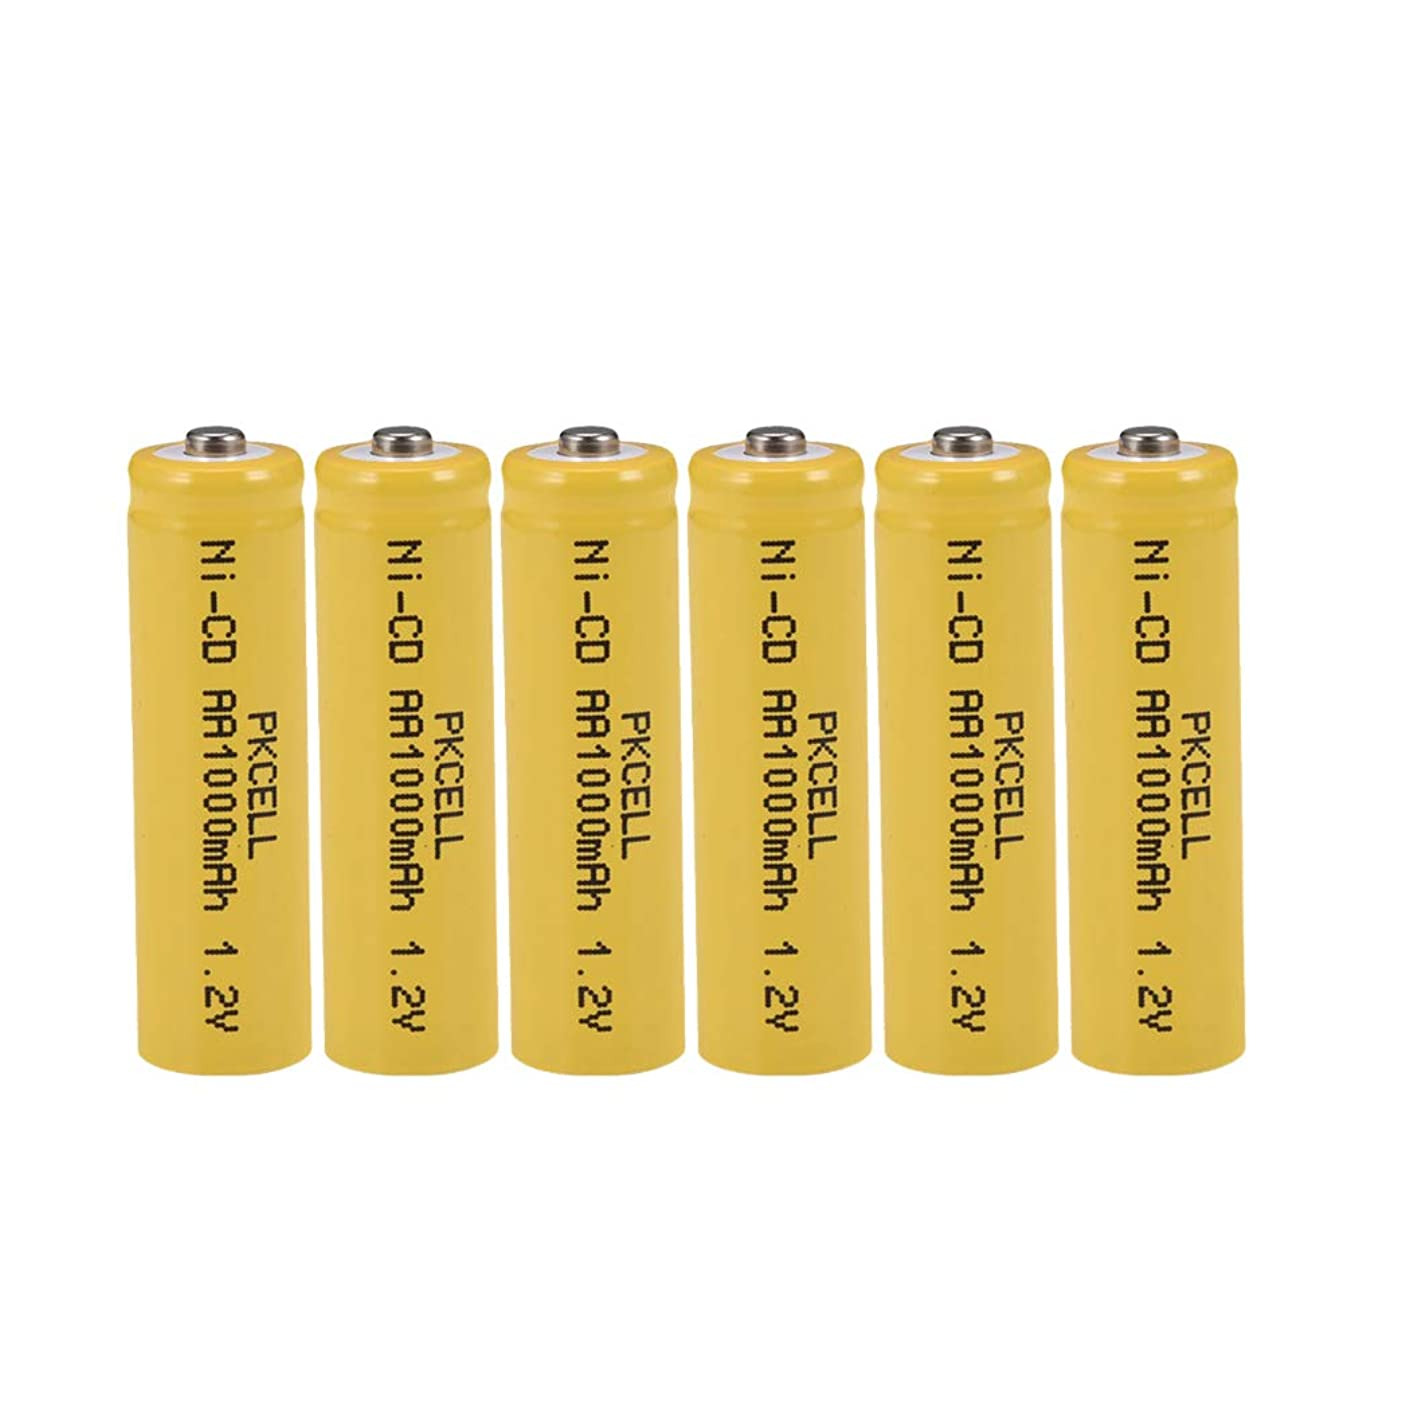 1.2v NICD AA Rechargeable Batteries 1000mAh for Solar/Garden Lights,6 Counts